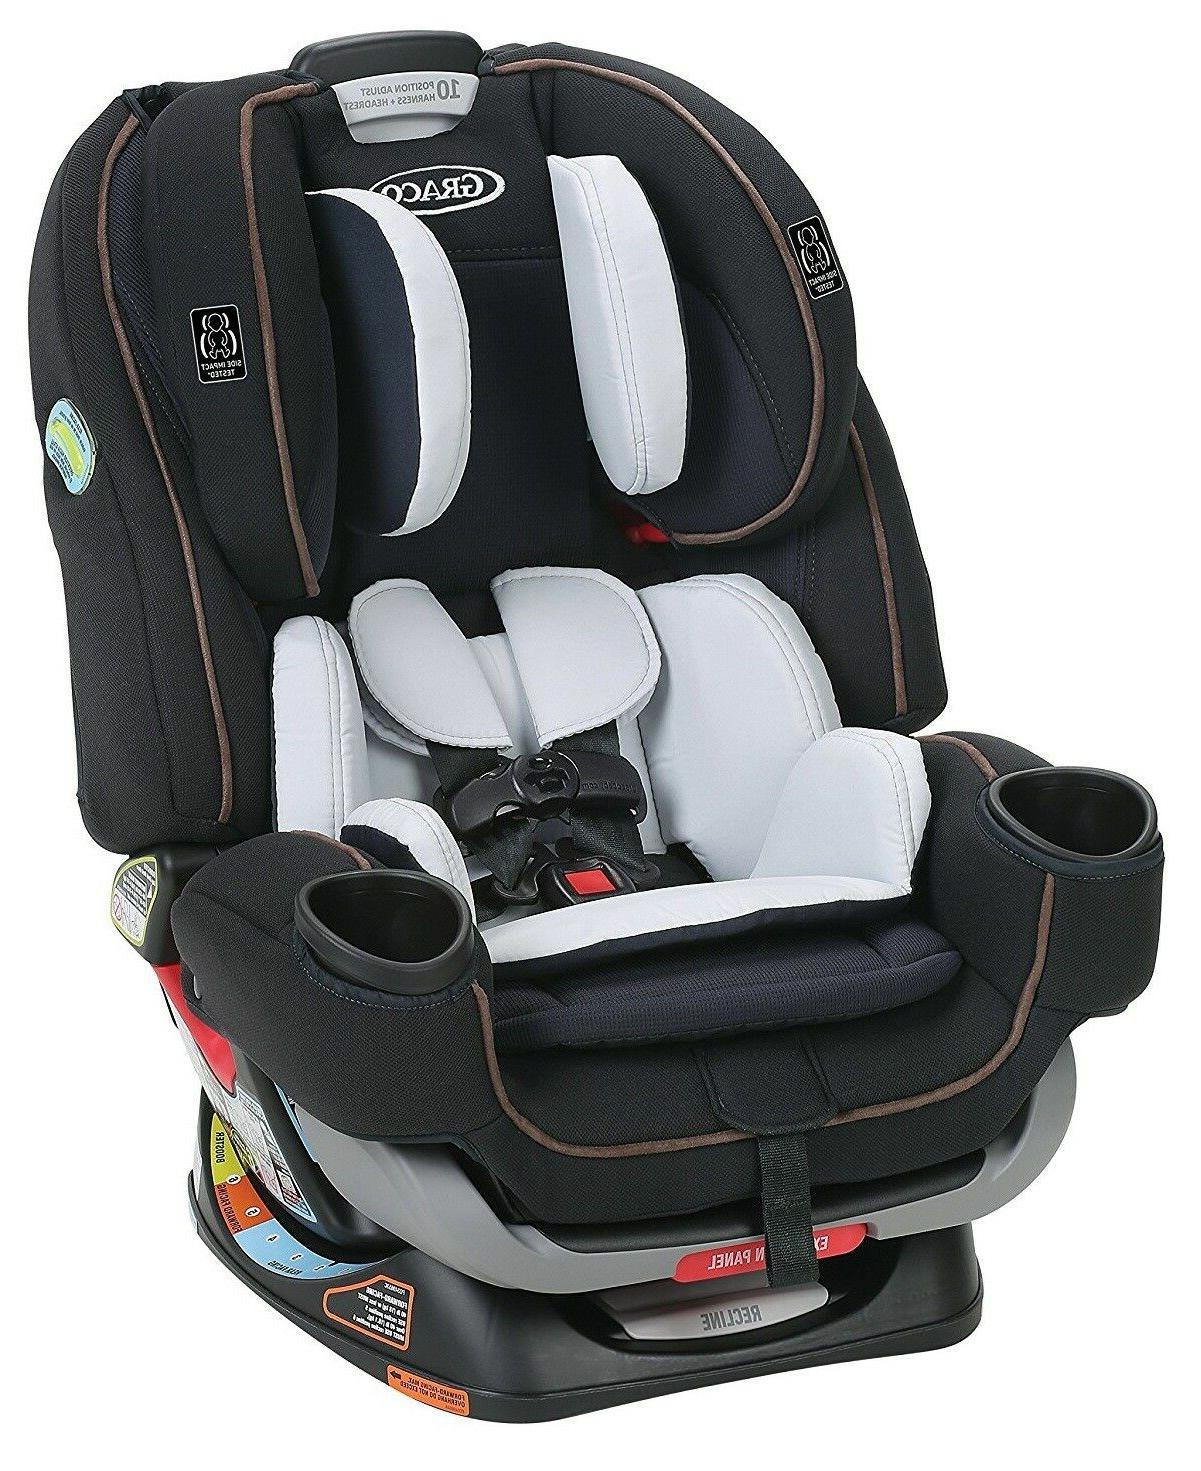 4ever extend2fit 1 car seat